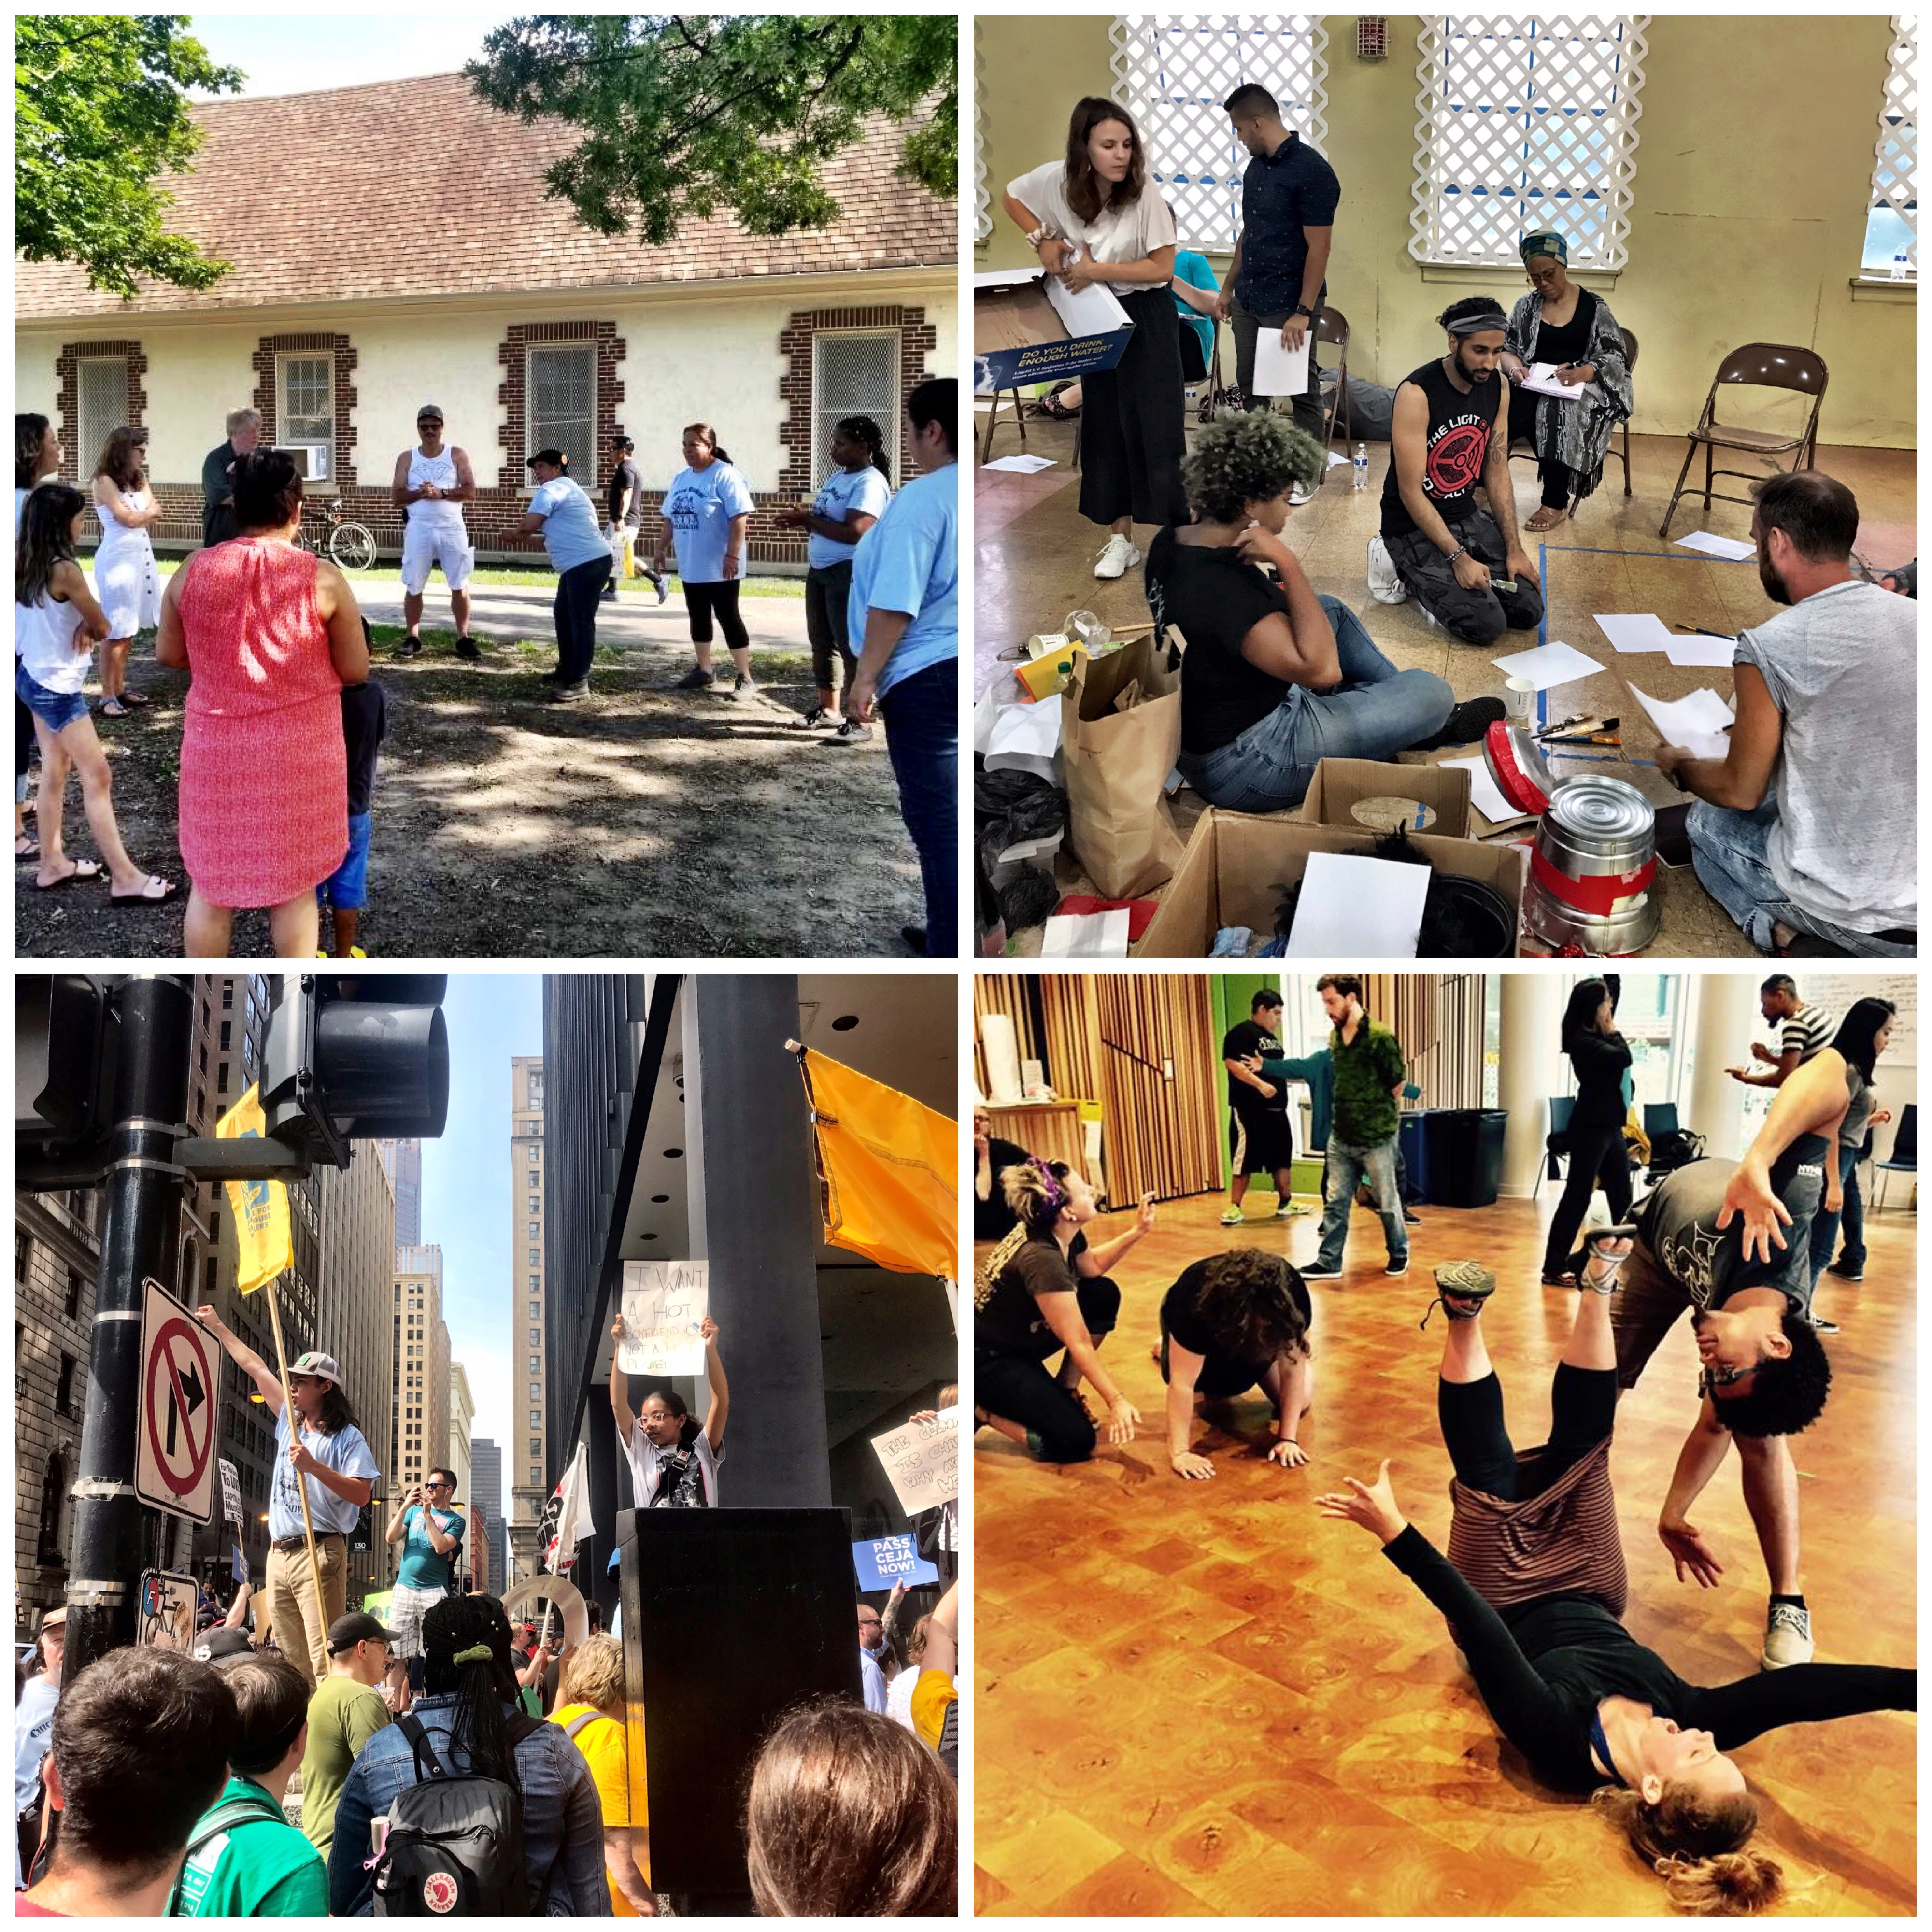 Vibrant collage of photographs of workers, organizers, activists, educators, students, and artists in action in various indoor and outdoor community settings in Chicago—in the street, in a park, in a rehearsal space, in an education center.